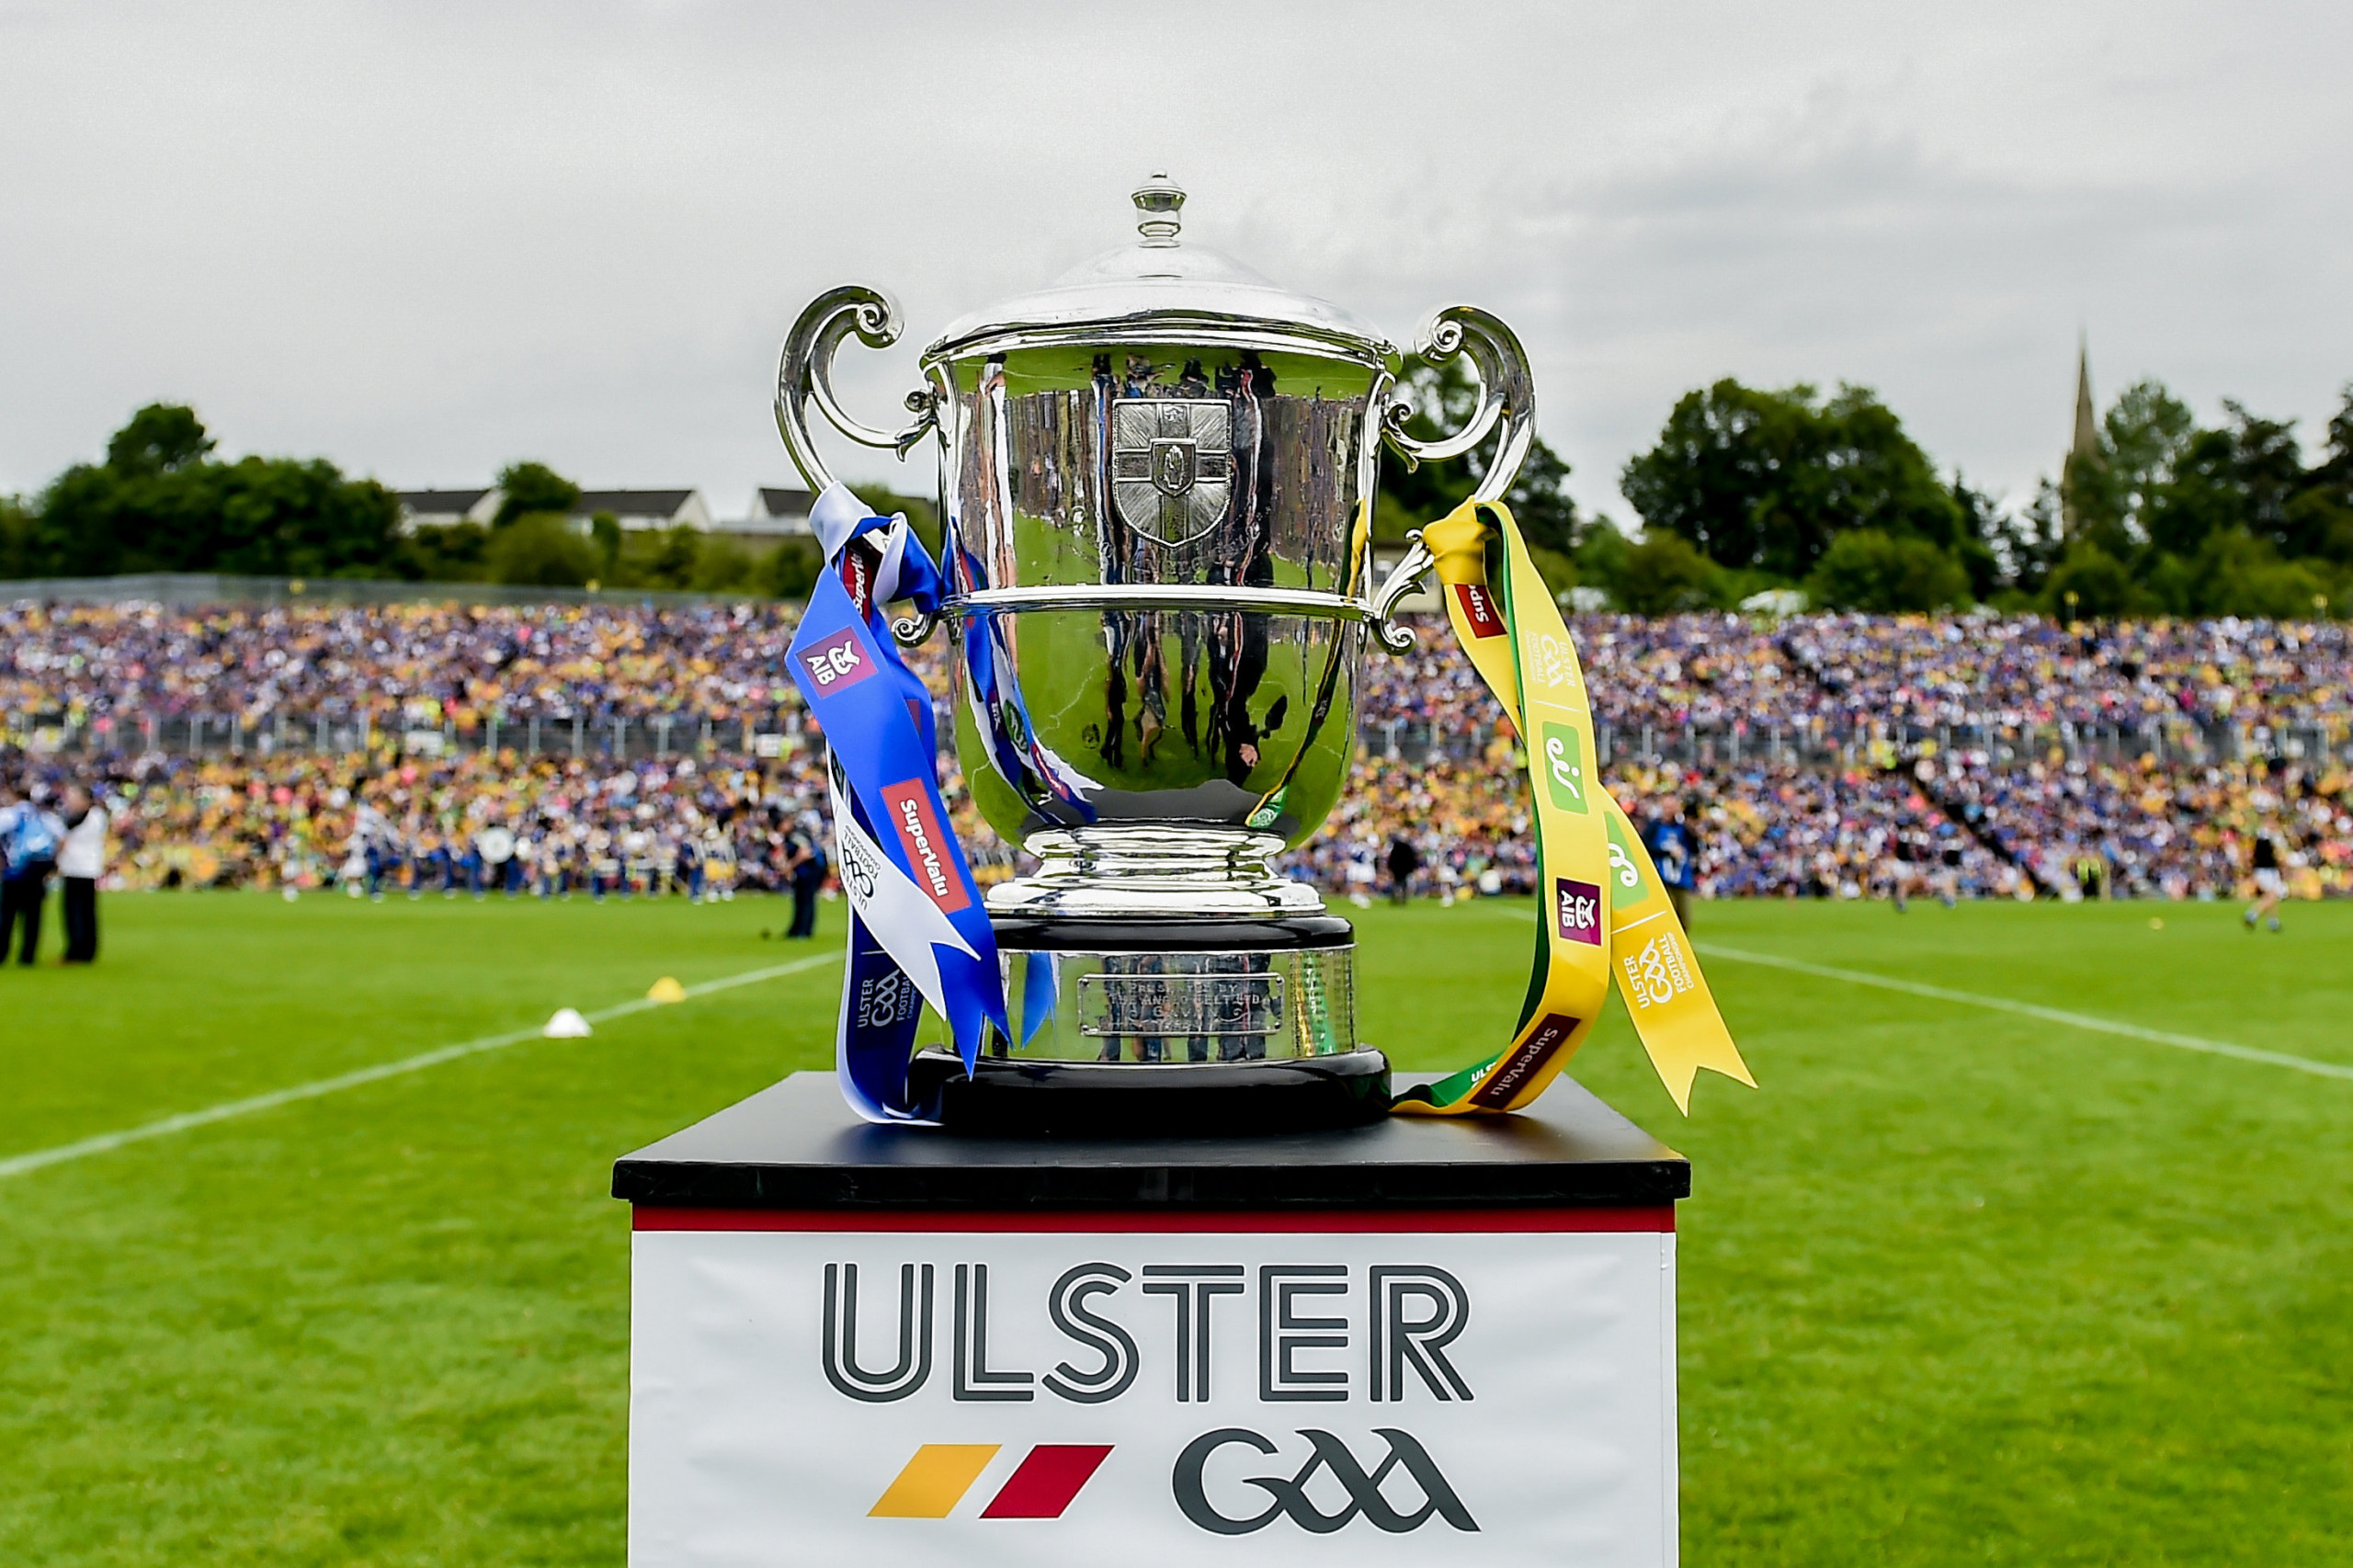 Update on Ulster GAA 2020 Fixtures and Competitions | Cumann Lúthchleas  Gael Uladh